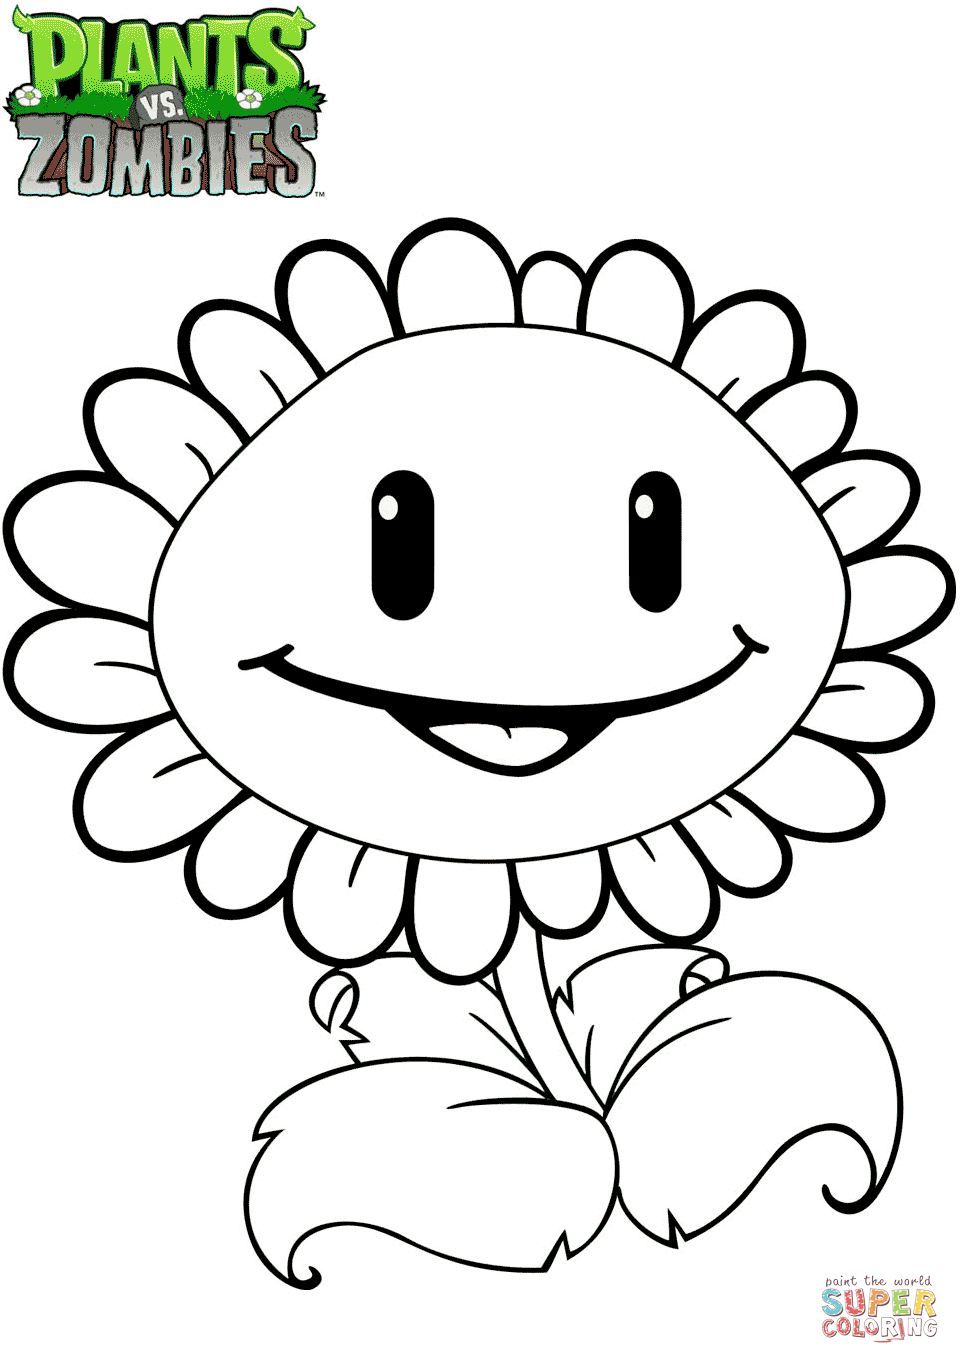 960x1364 Plants Vs. Zombies Sunflower Coloring Page Free Printable